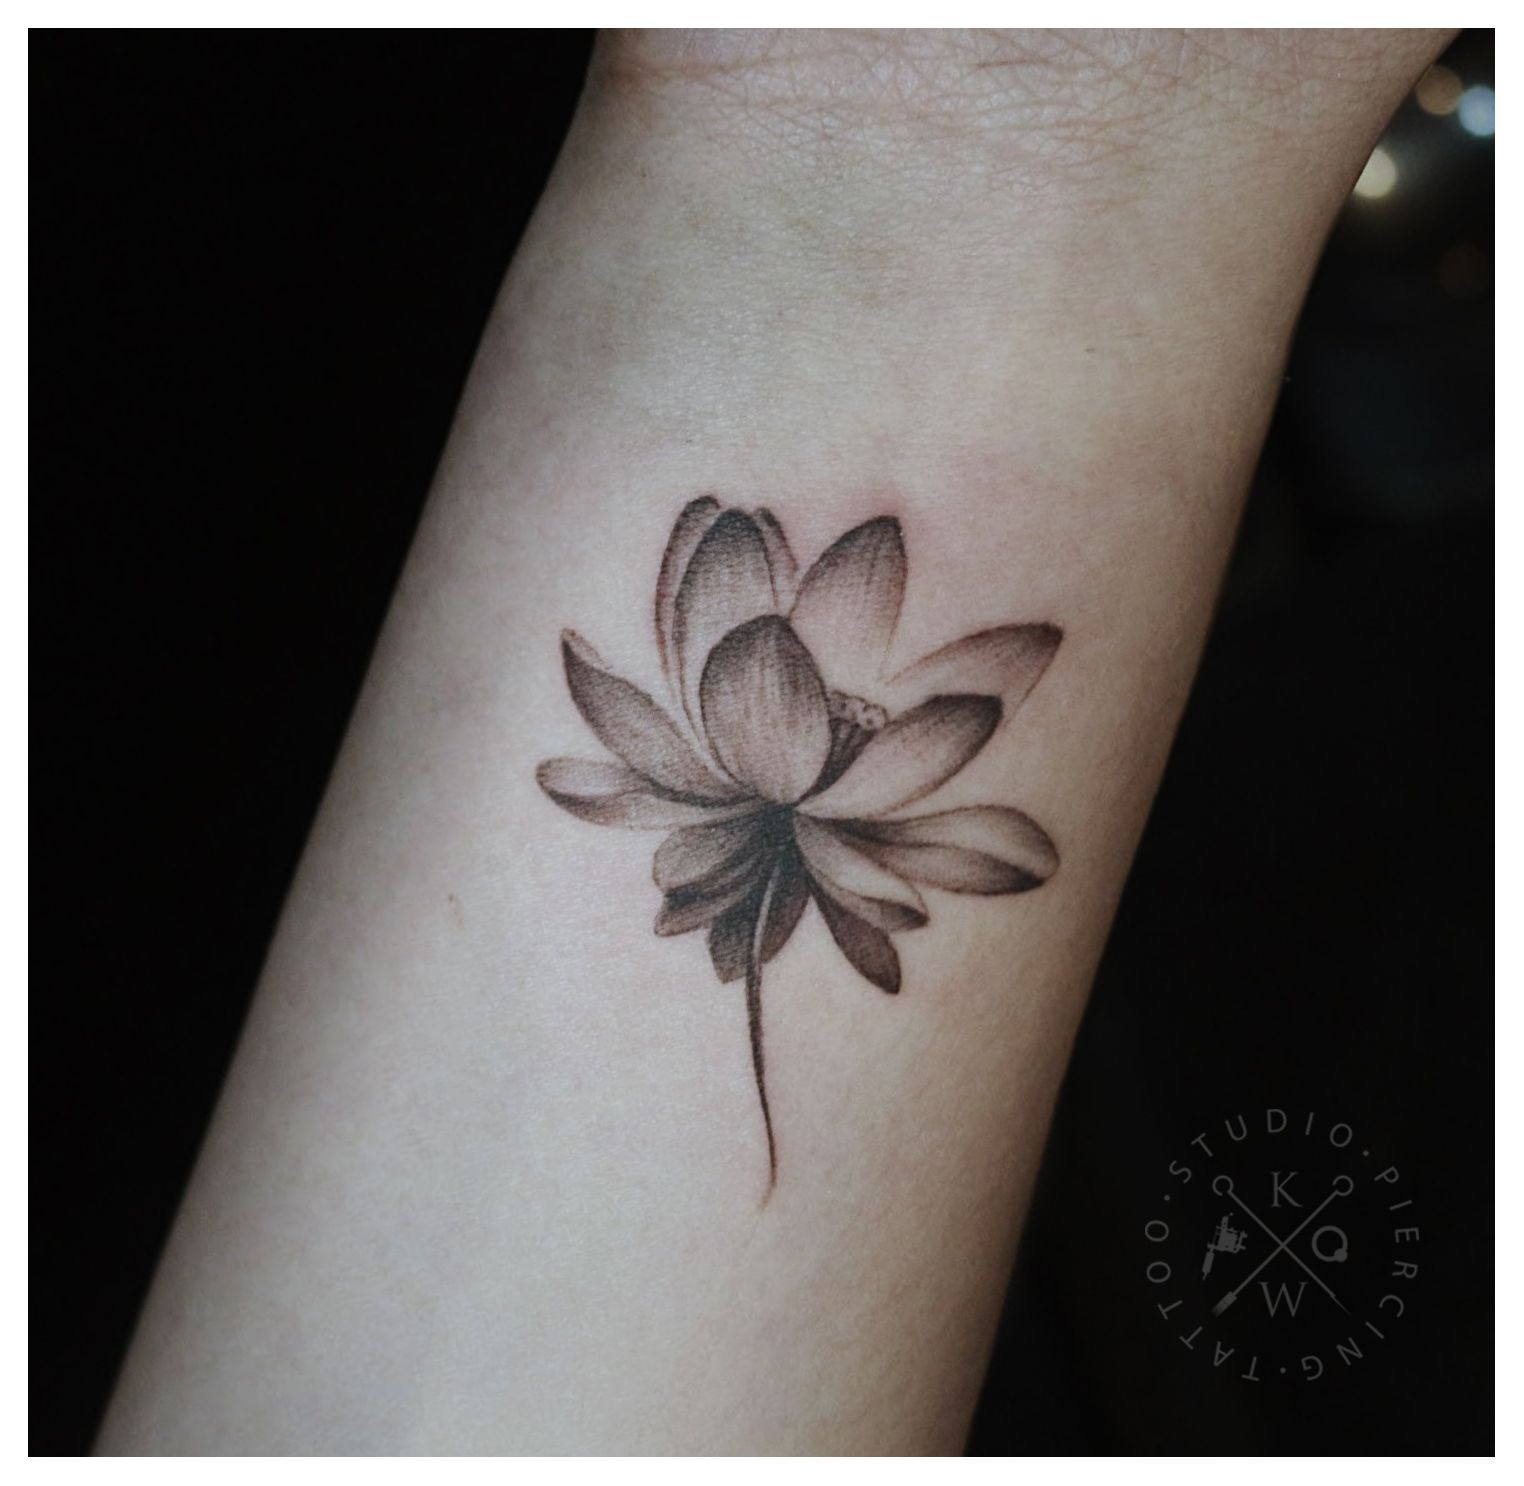 Lotus Ktattoo Ticay Tatoos Tattoo Saigon Saigonese Vietnam Vietnamese Equilattera Theart Flower Wrist Tattoos Wrist Tattoo Cover Up Cover Up Tattoos